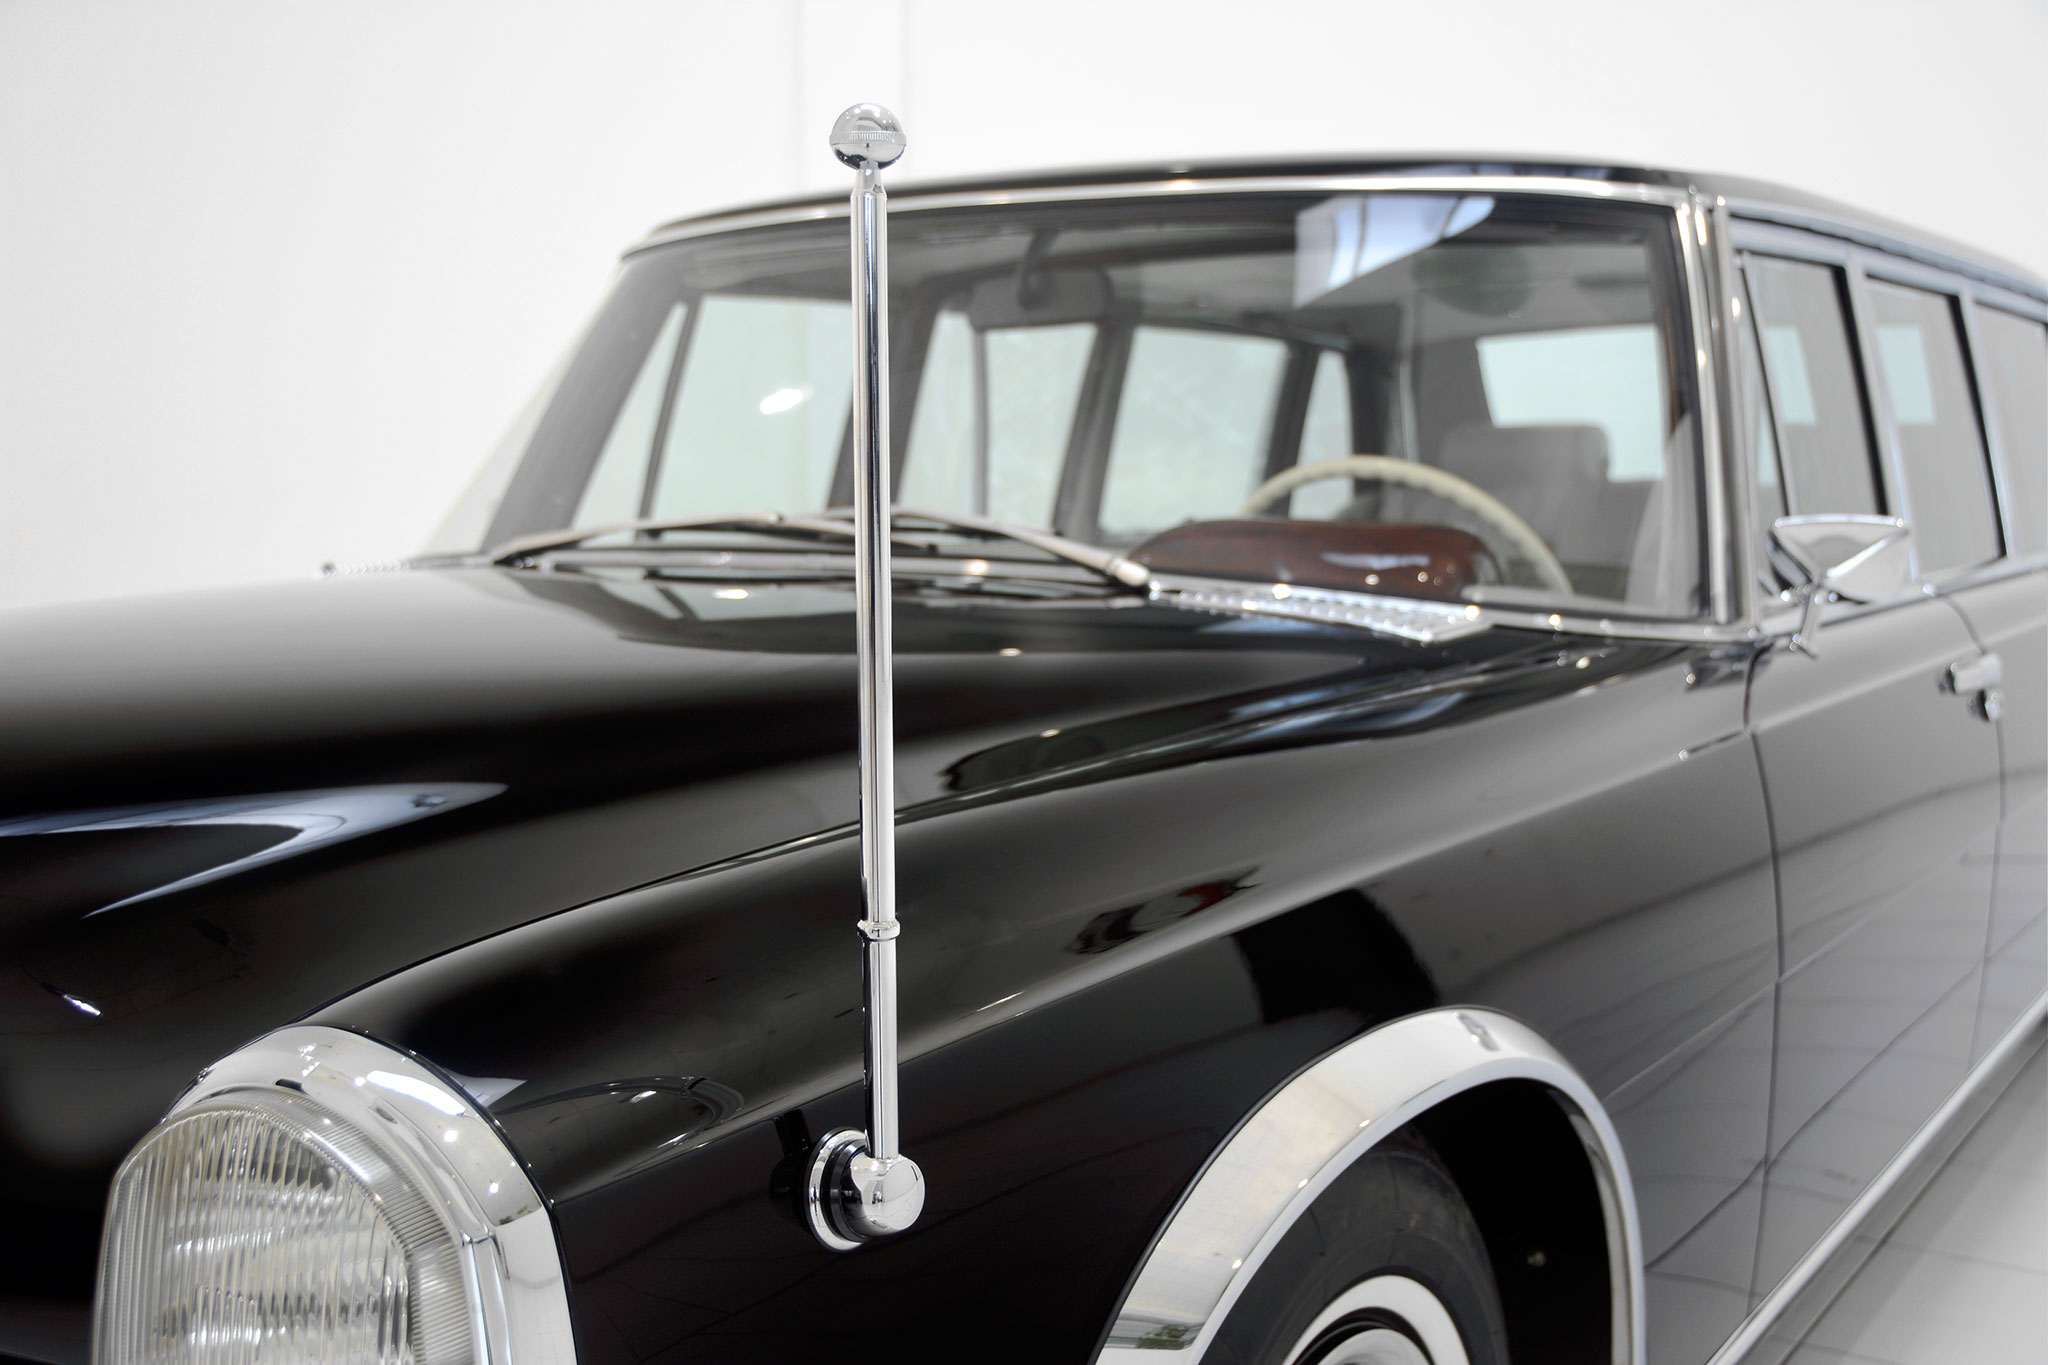 Brabus promotes classic services with restored mercedes for Mercedes benz dealer services